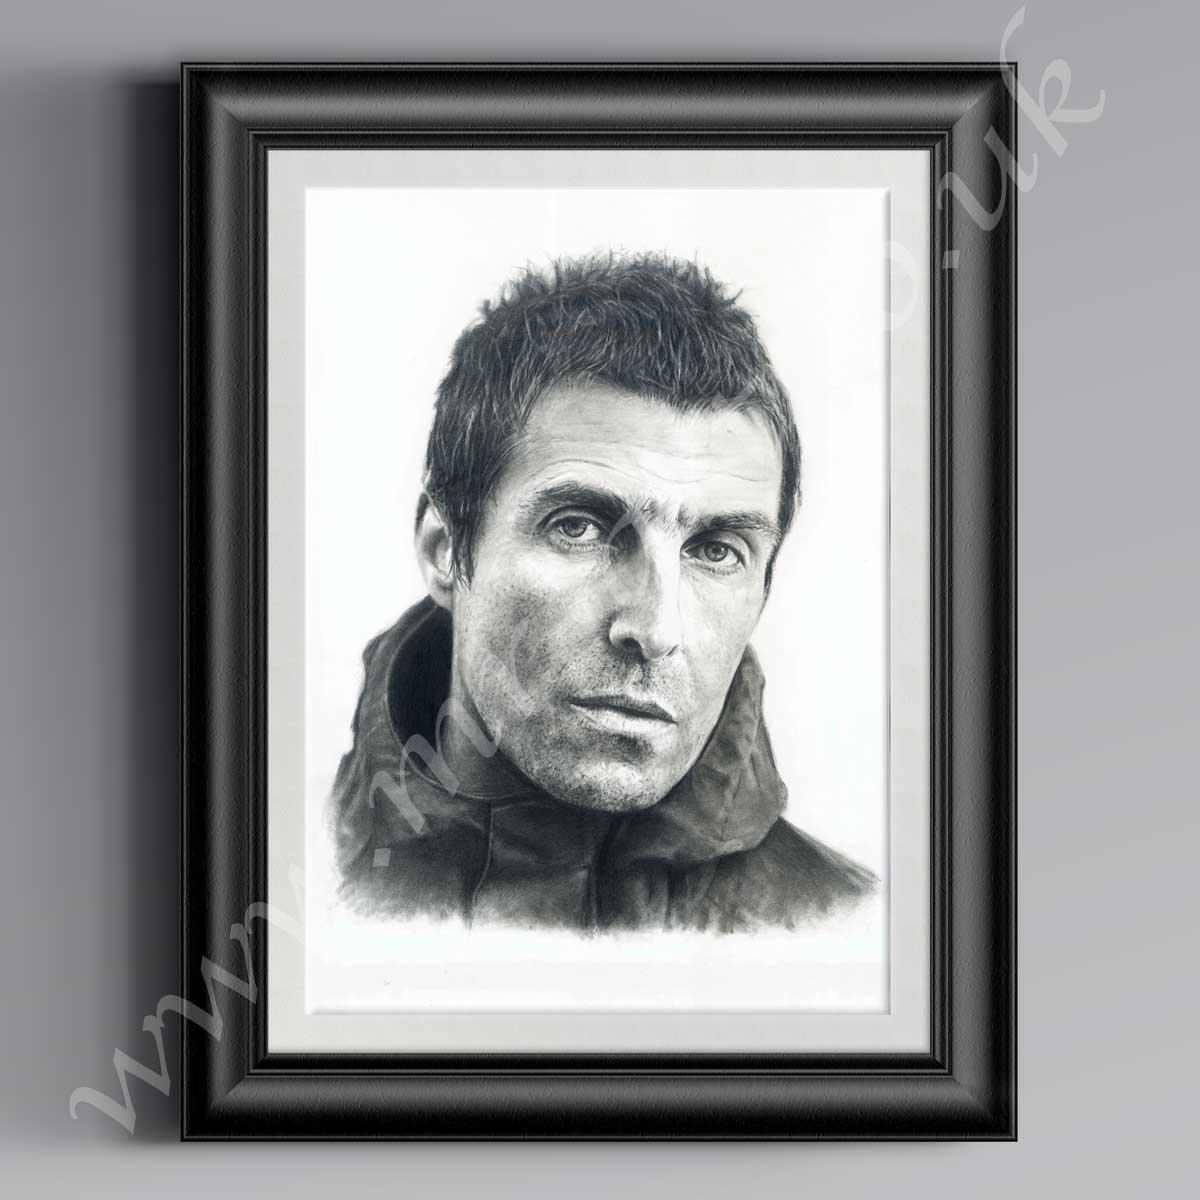 Liam Gallagher Pencil Drawing